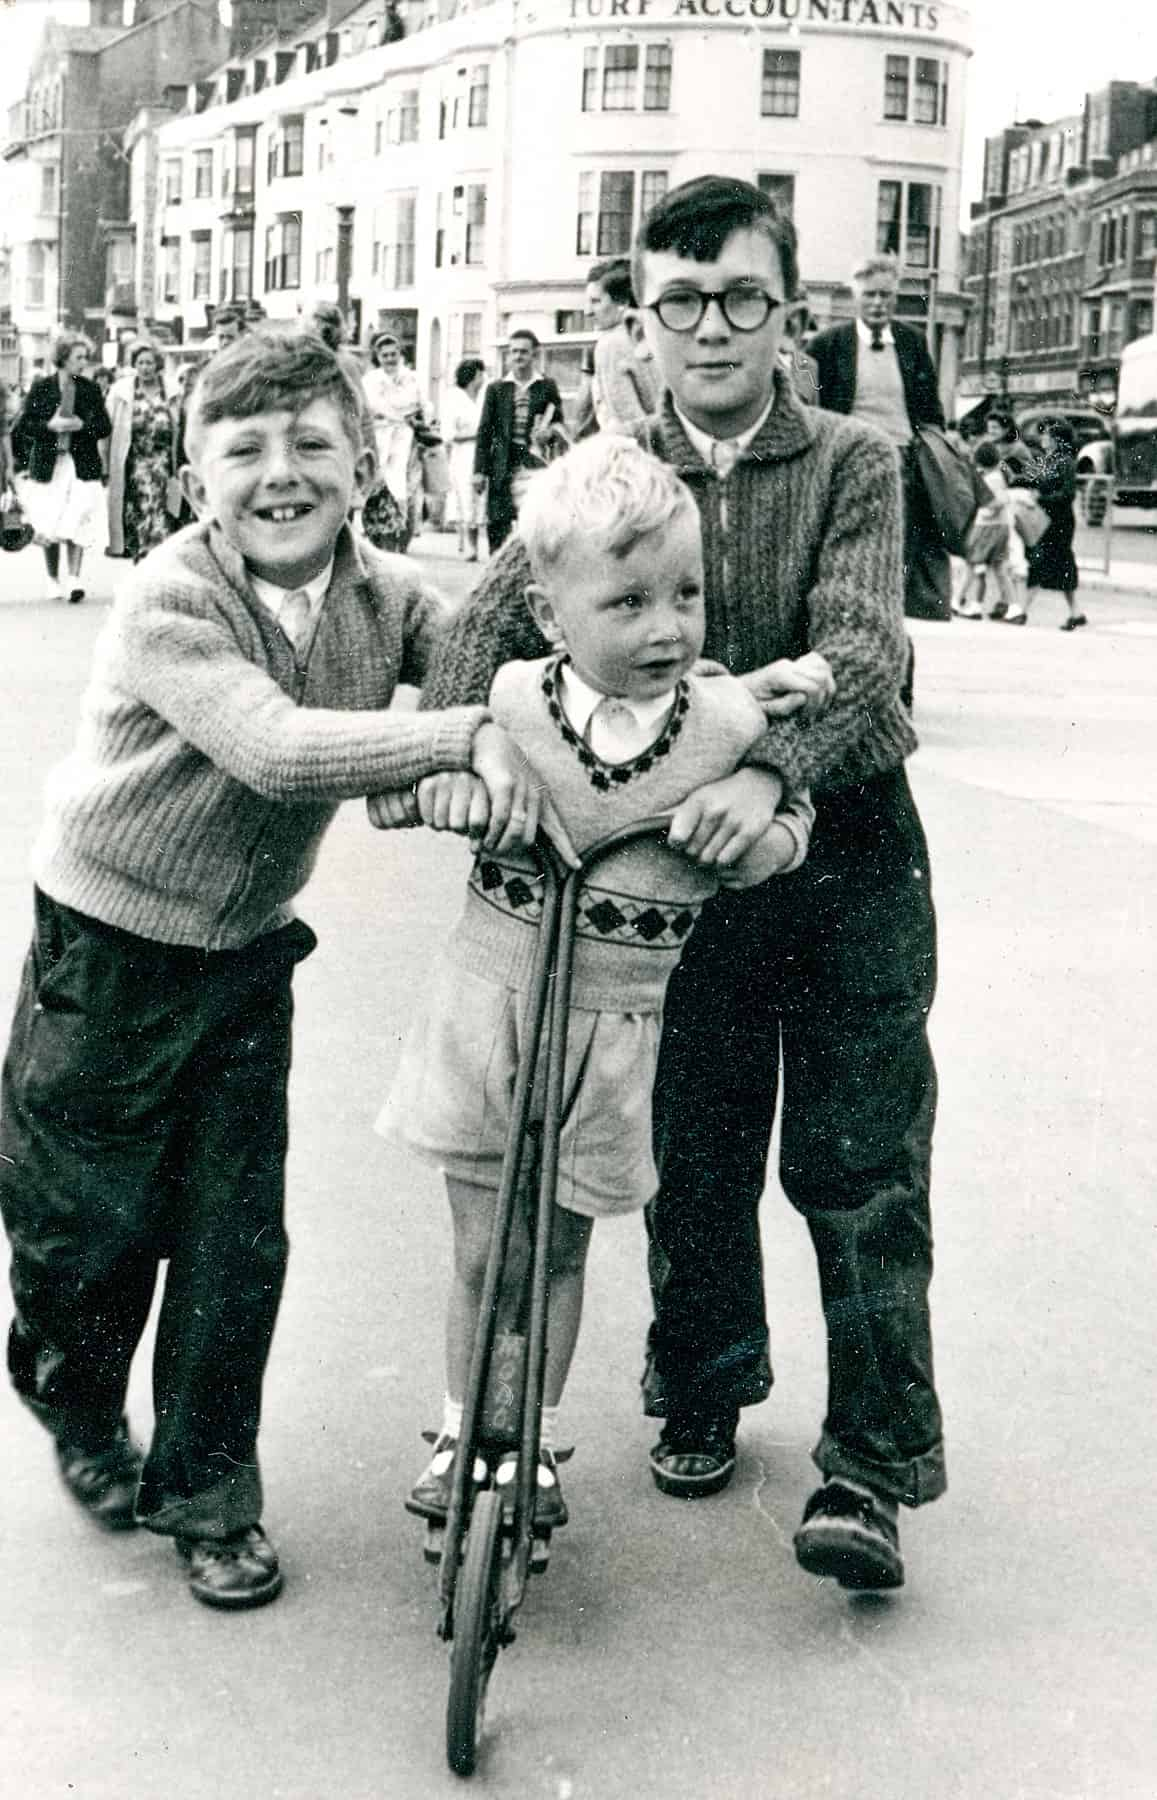 That's me on the scooter on holiday in Weymouth, and that's my cousin Clive and my other cousin Leonard. I must have been about four I would have thought.